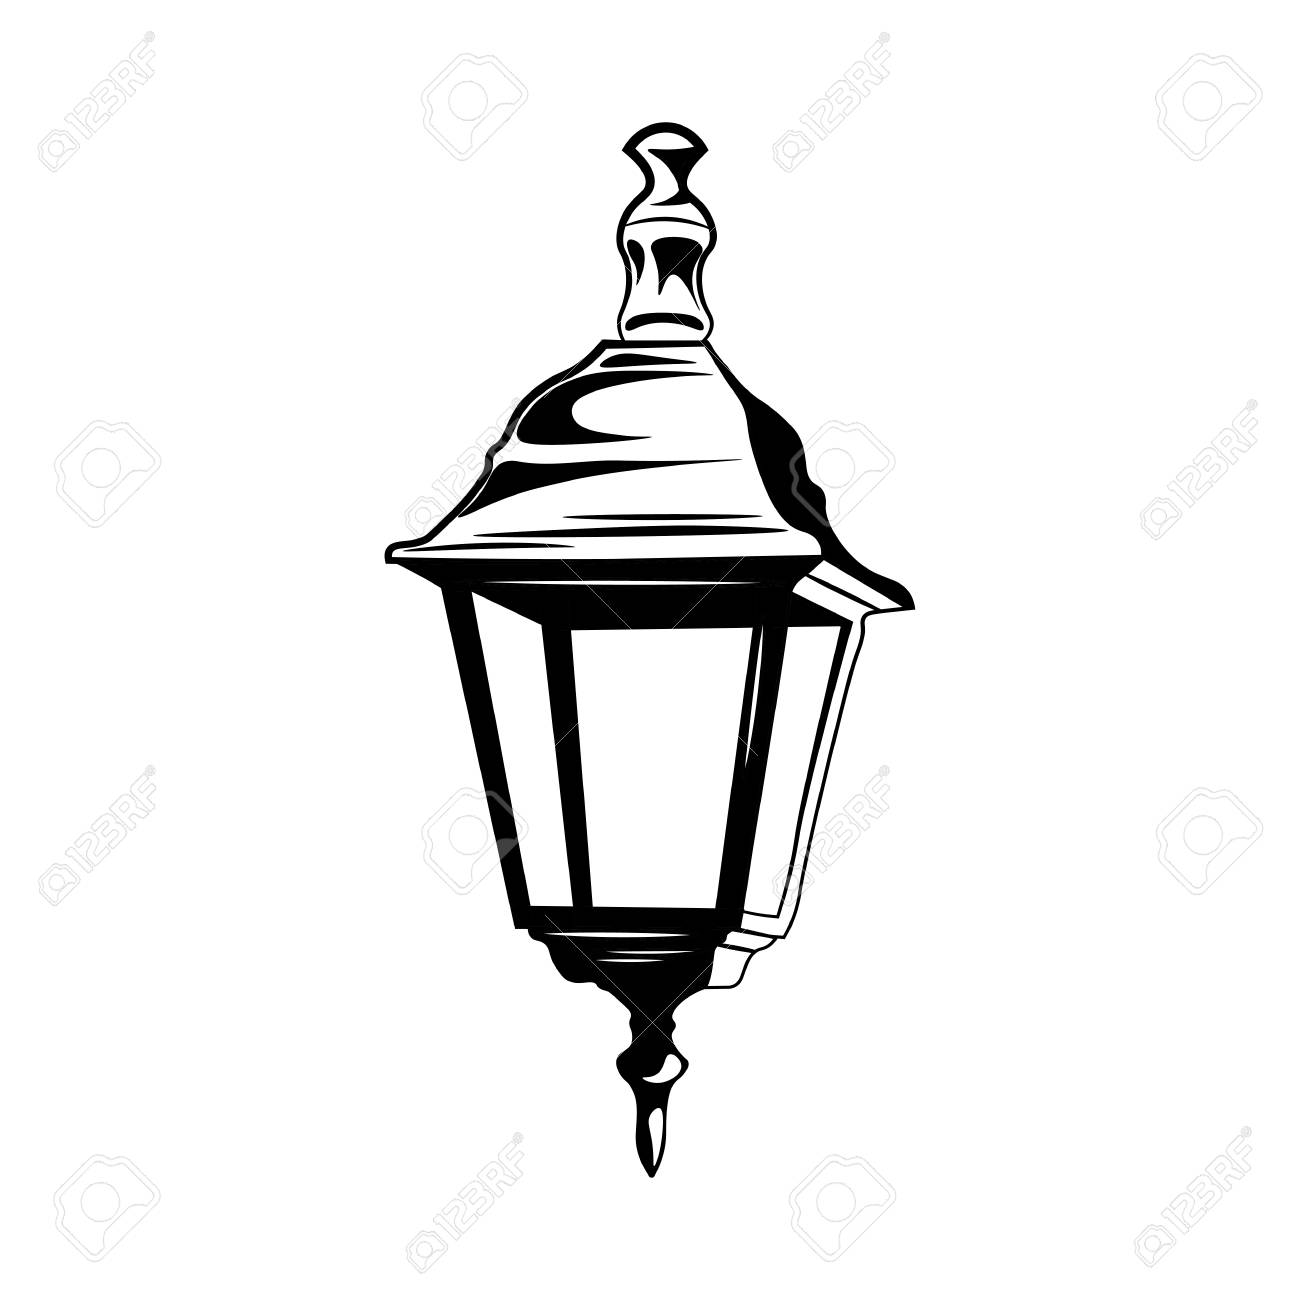 Lamp clipart old time. Free street light fashioned